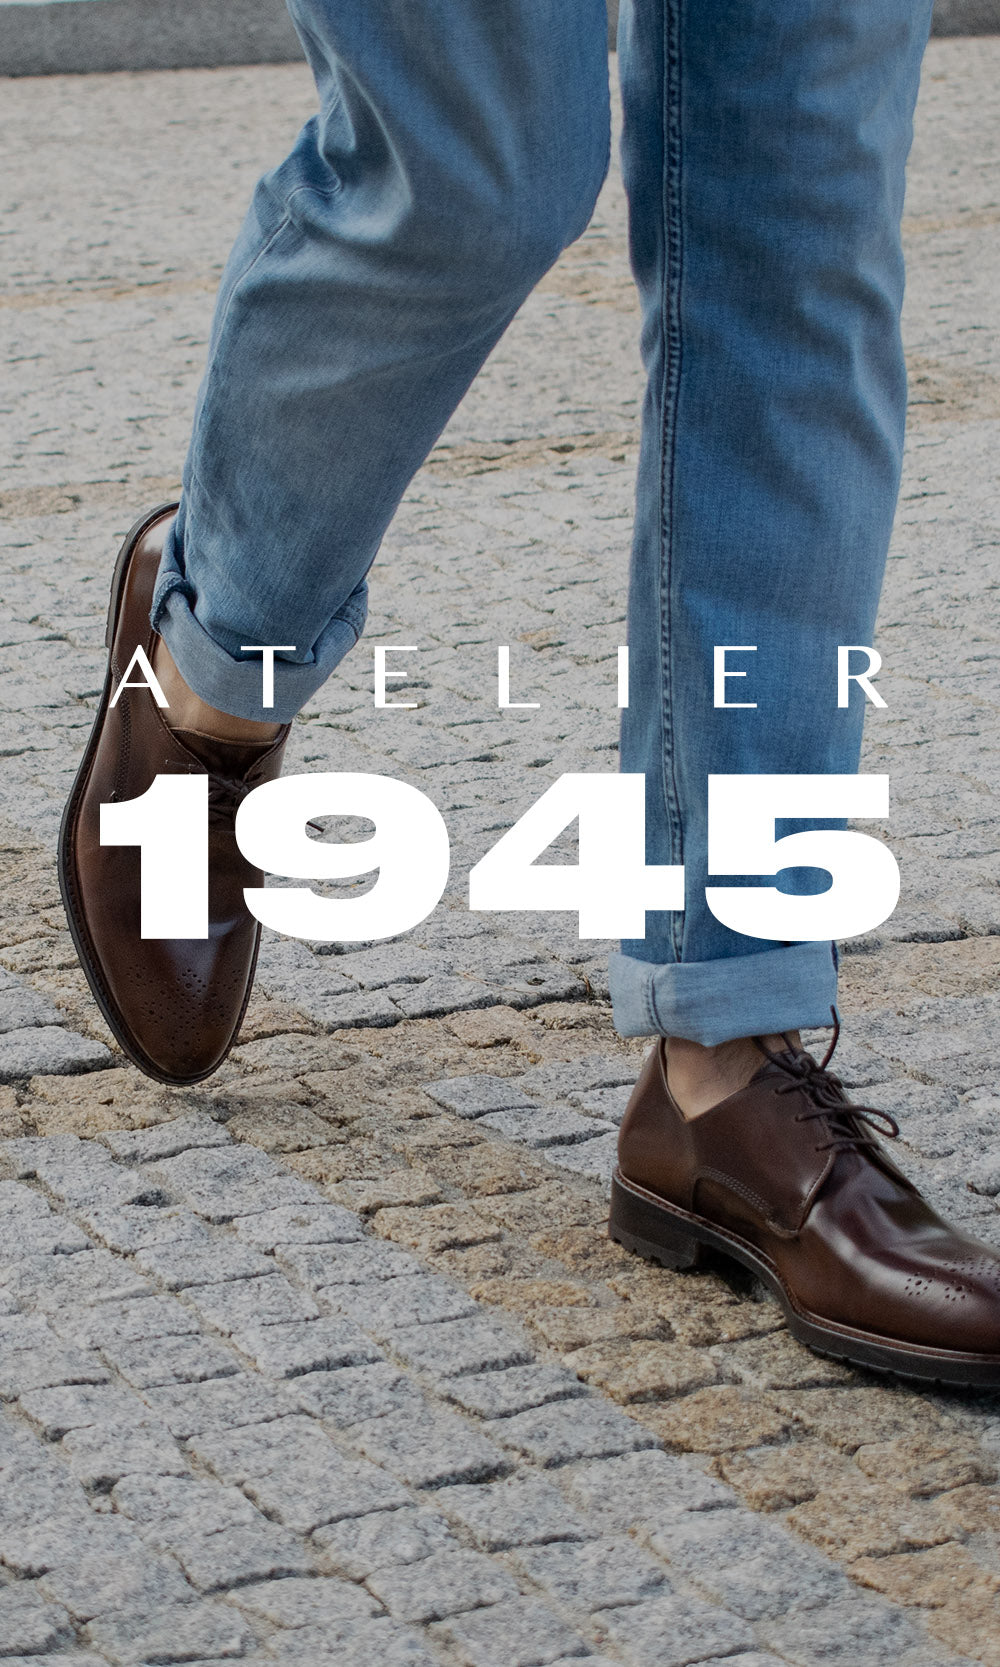 Atelier 1945 Collection